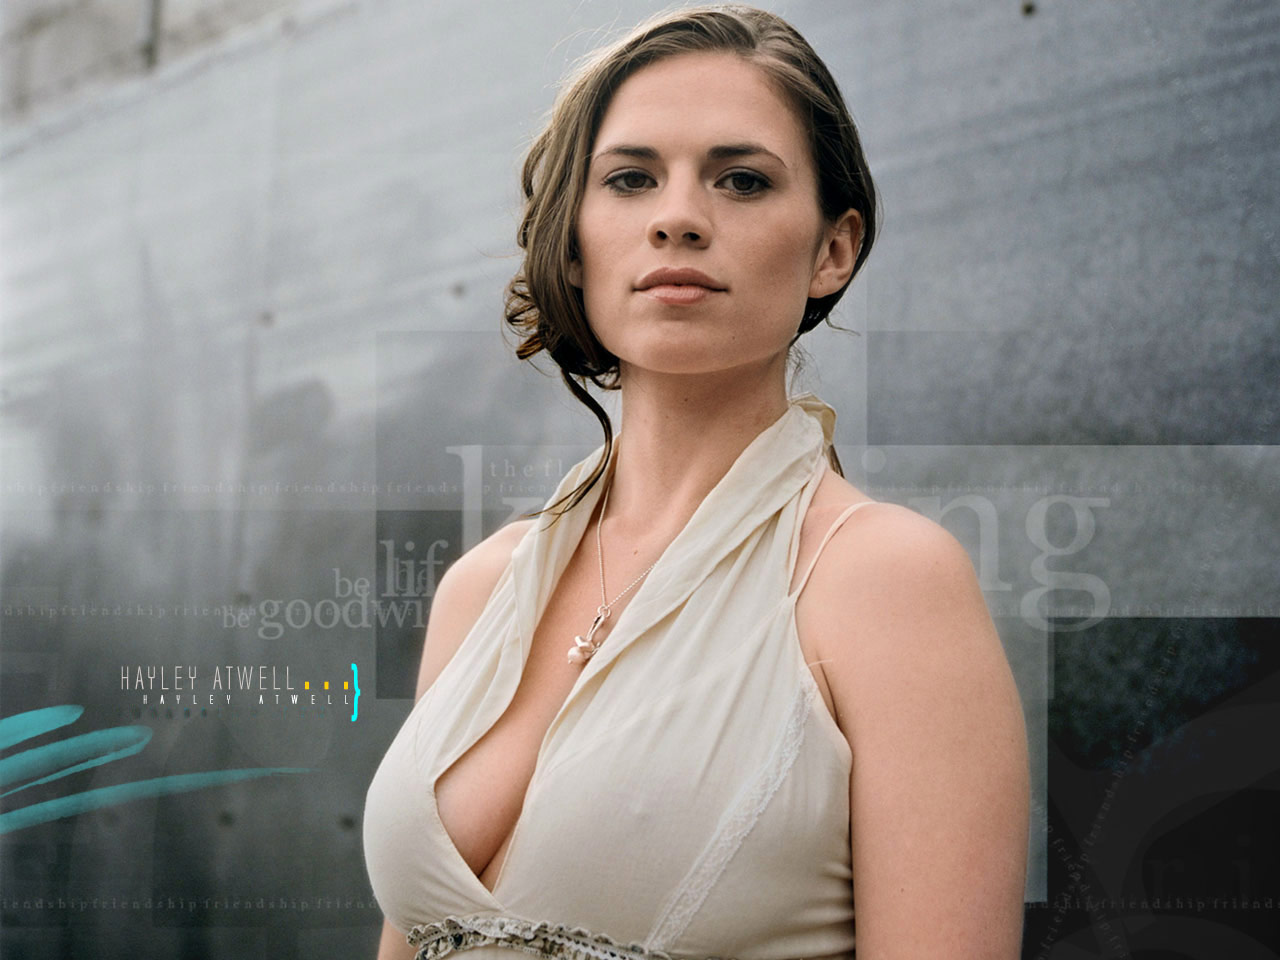 1280x960 - Hayley Atwell Wallpapers 33